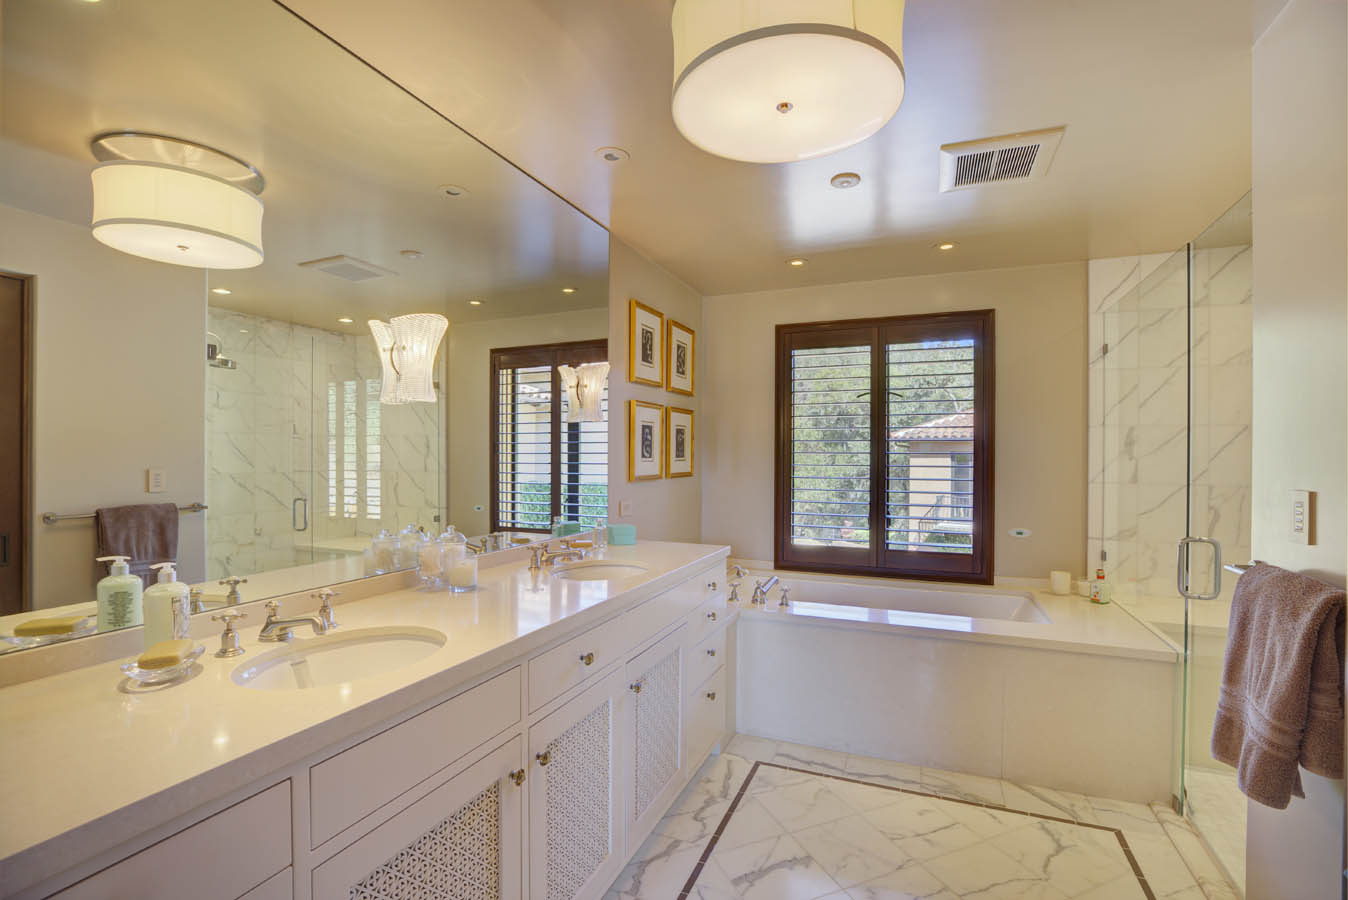 Dual sinks and bathtub 303 Deer Park St Helena California